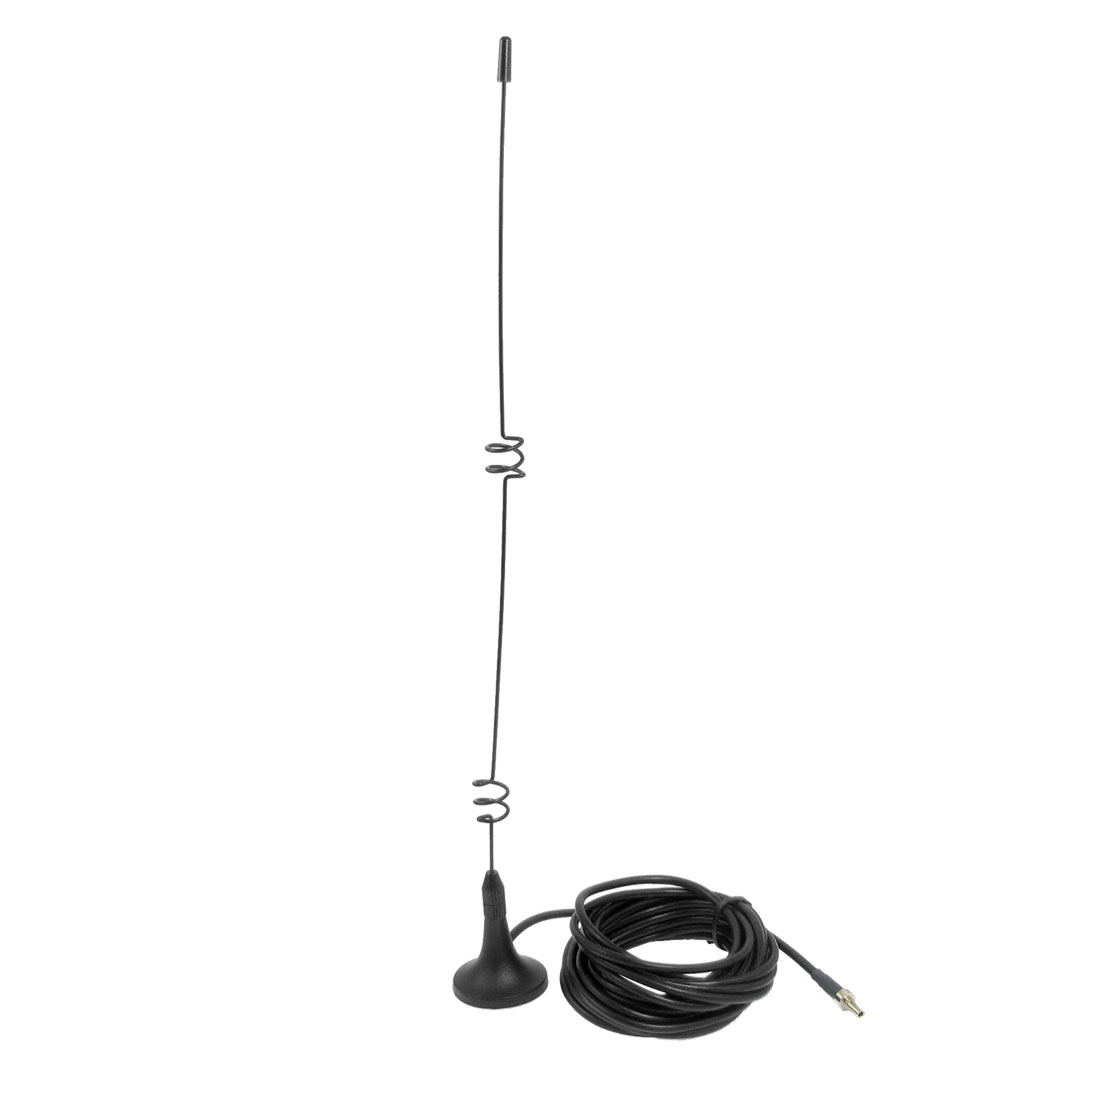 Network Wireless Lan 5dBi 3GHz CRC9 Male Connector High Gain Antenna